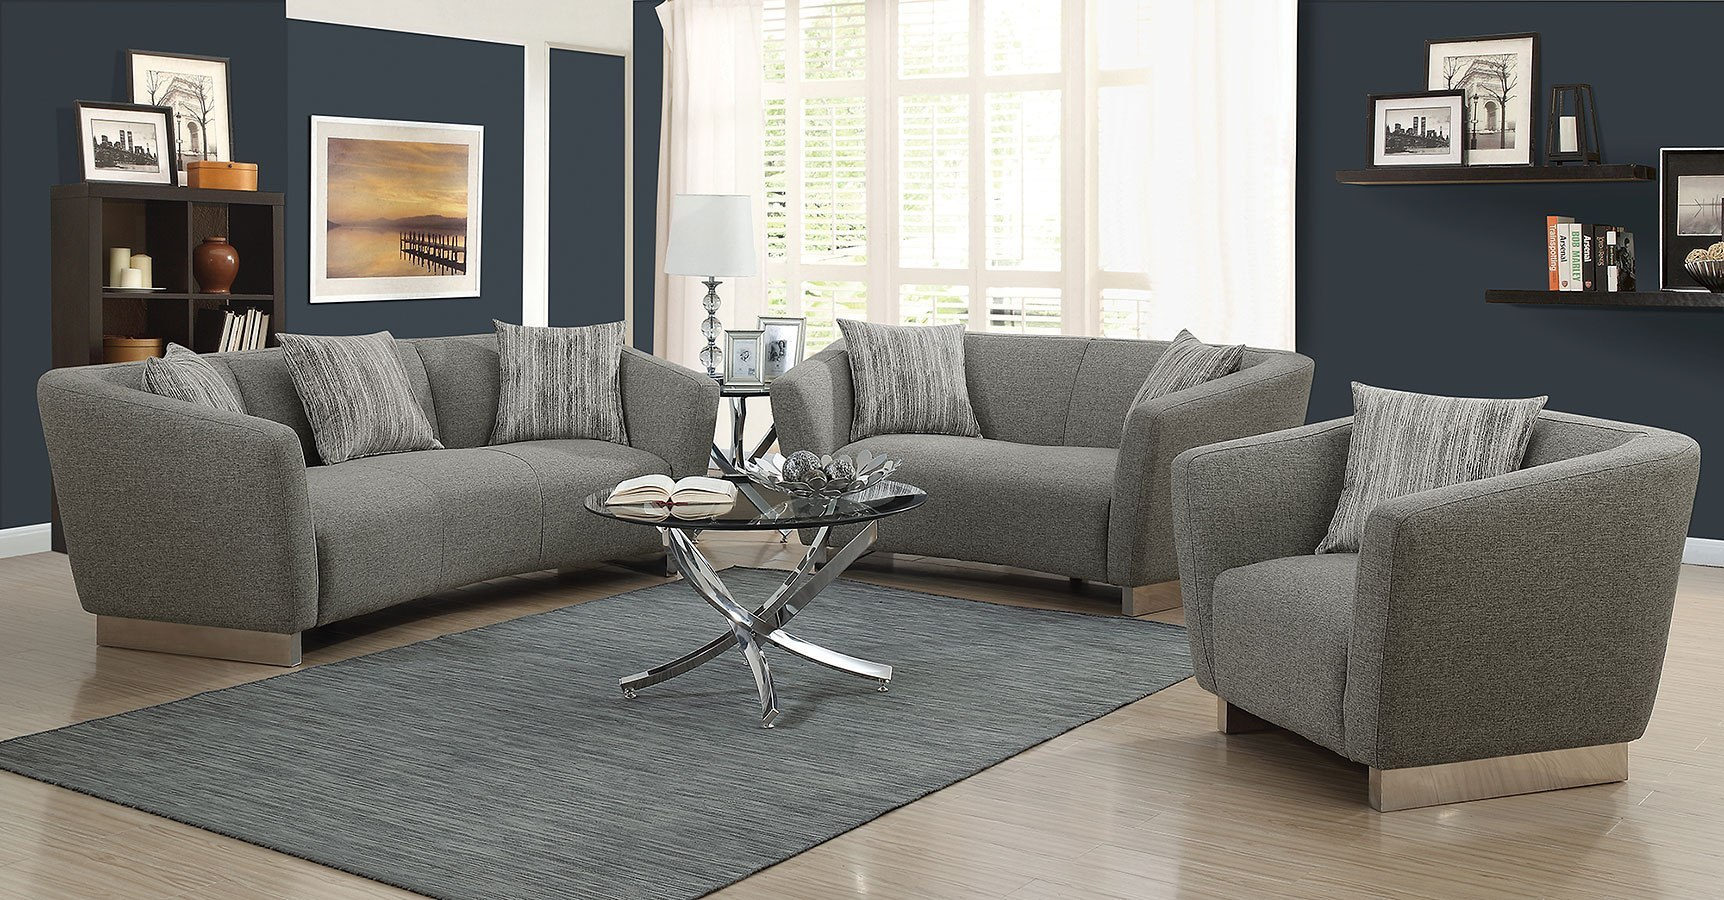 Grayson Living Room Set Coaster Furniture Furniture Cart for Nice Living Room Sets